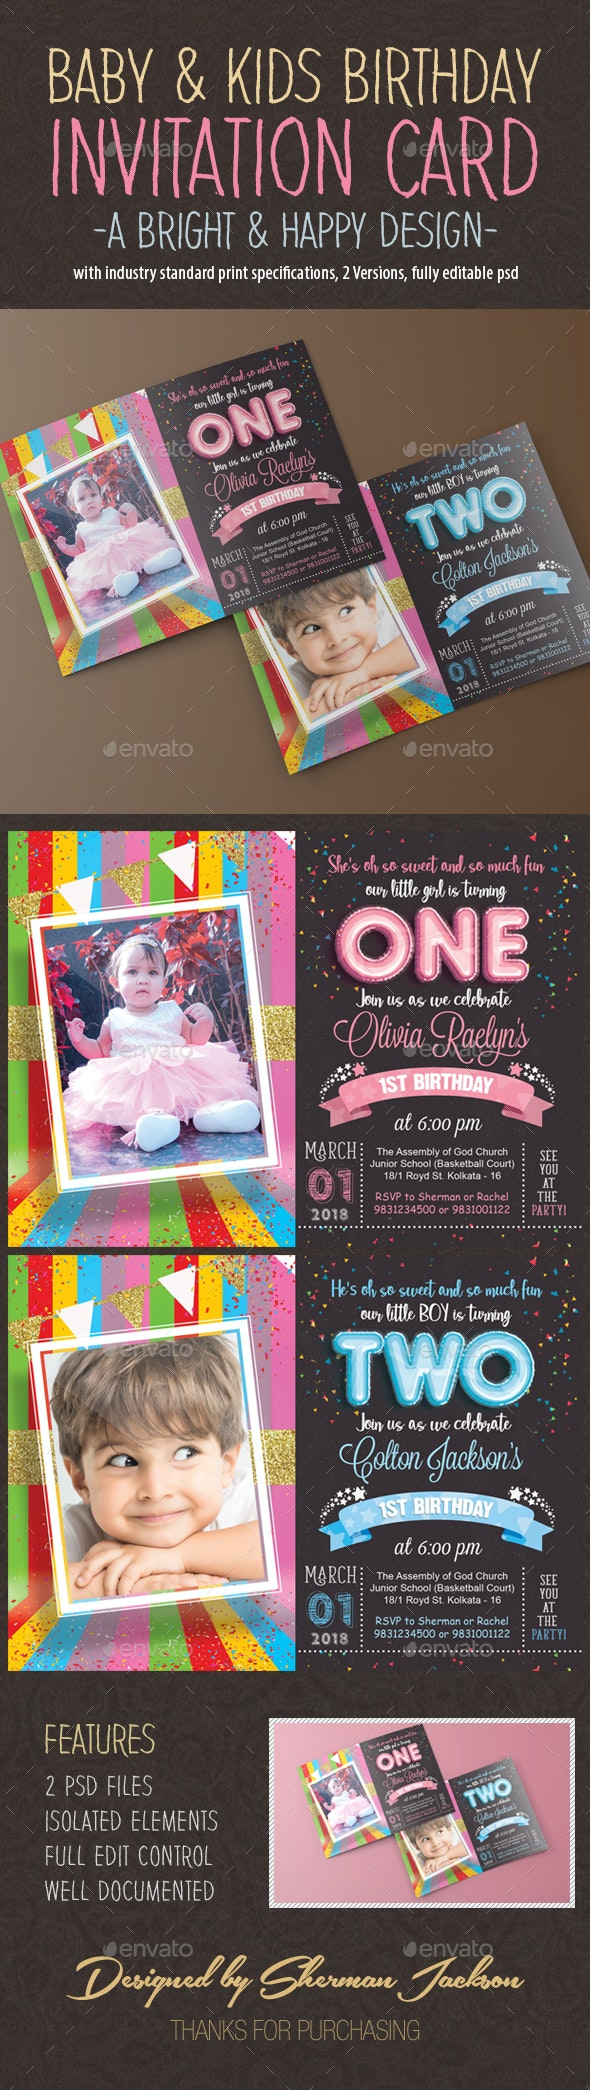 Kids Birthday Invitation Card - Invitations Cards & Invites